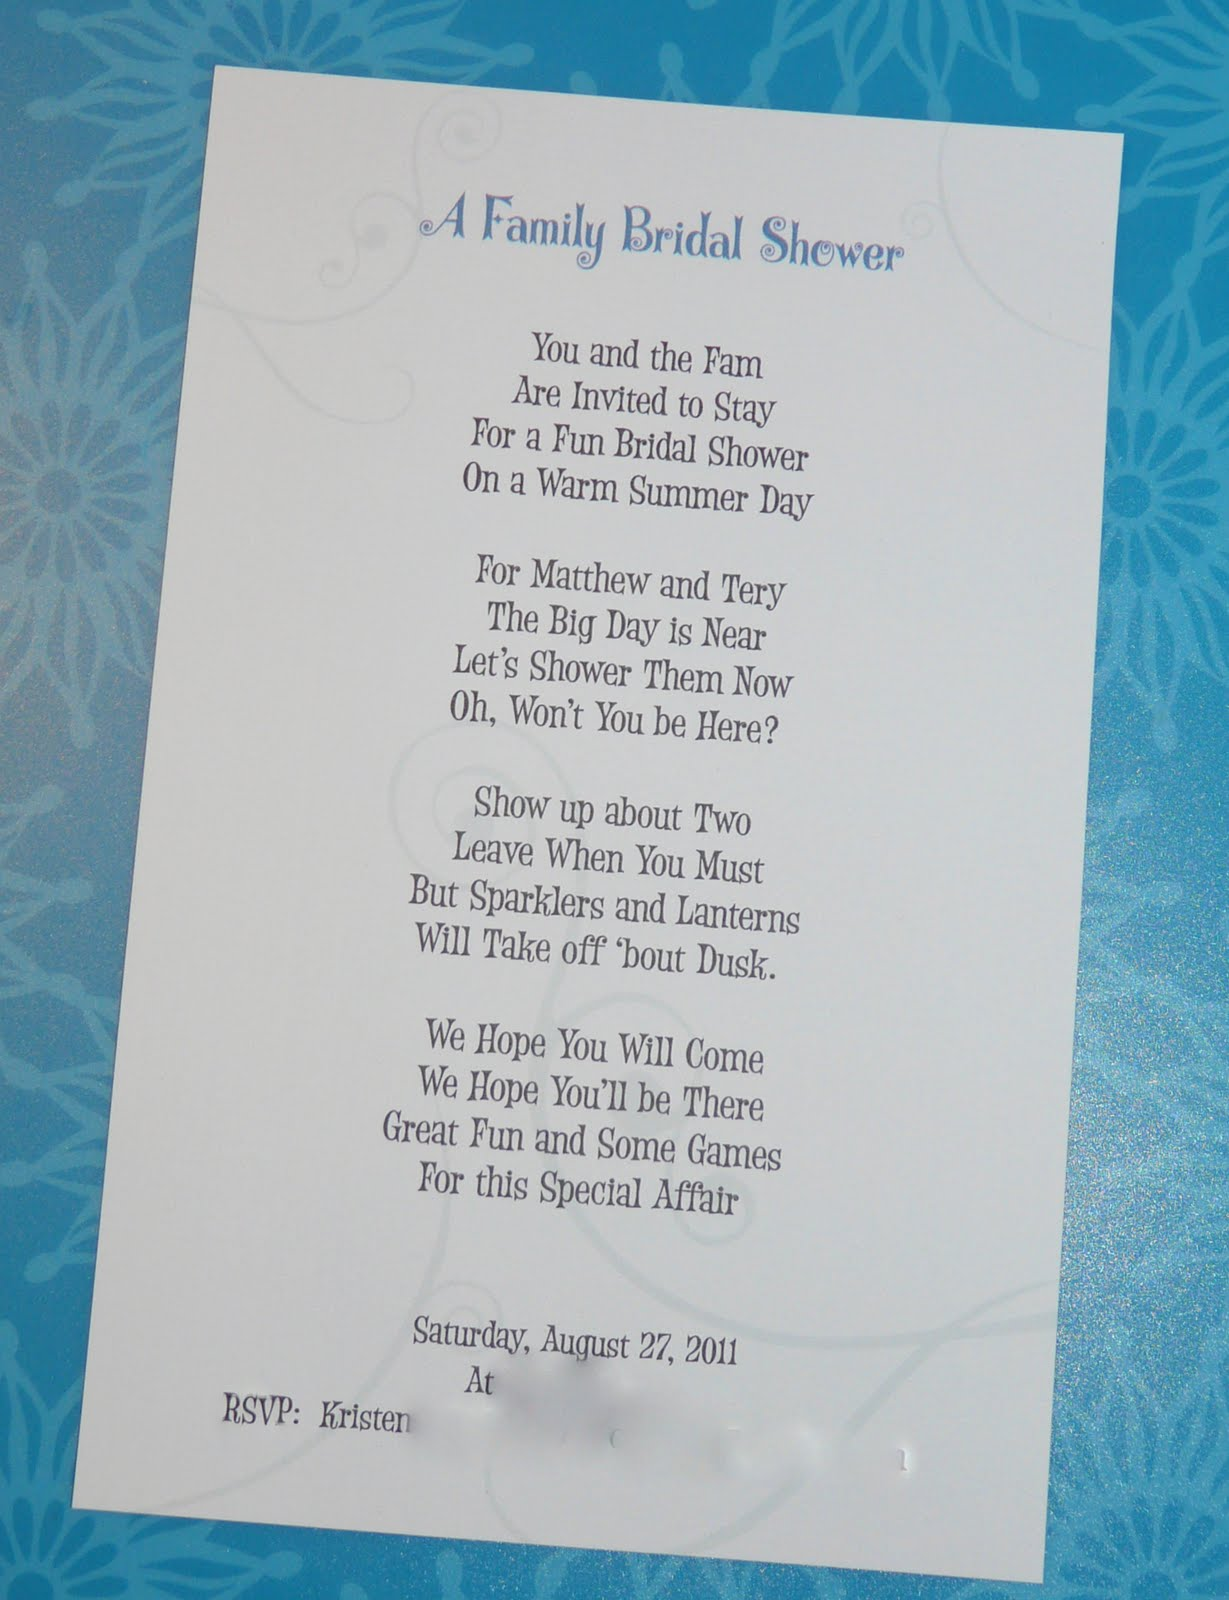 ... shower invitation poem i wrote i love making shower invitations unique